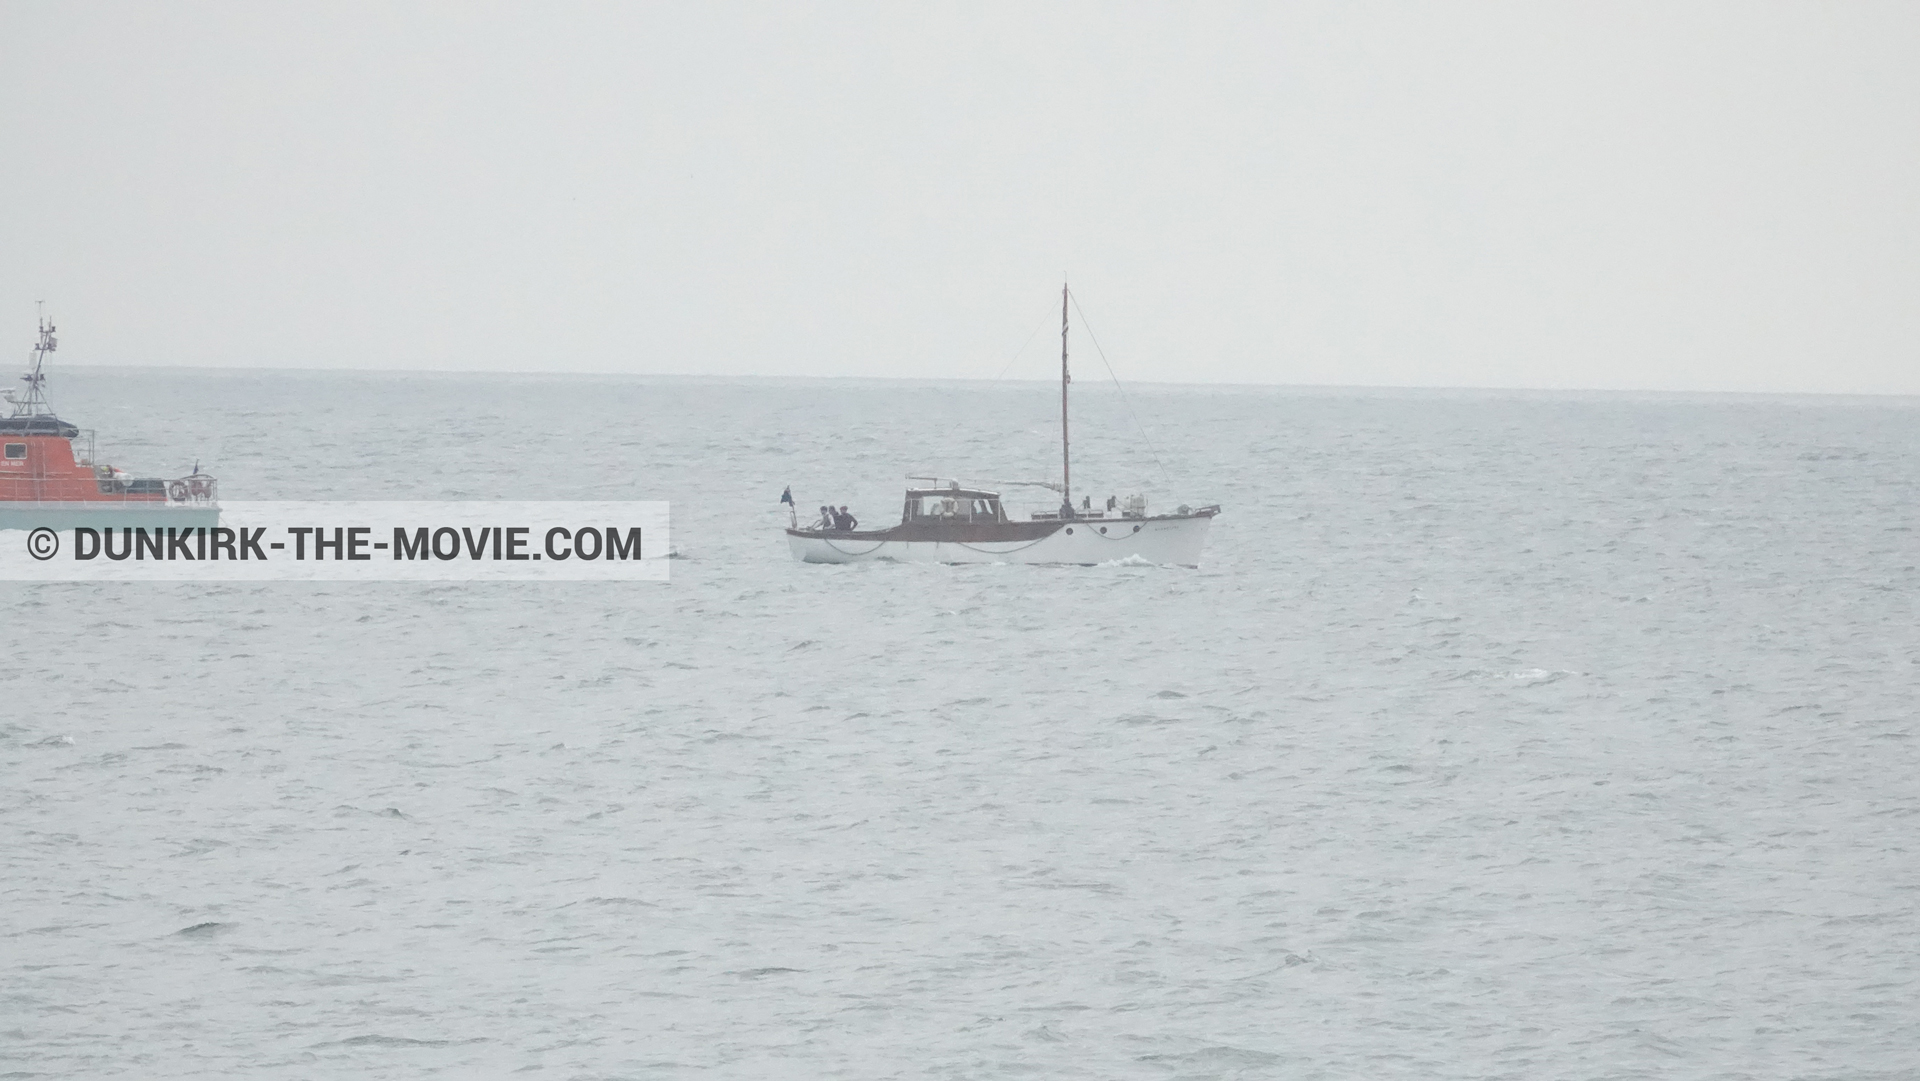 Picture with boat, Moonstone,  from behind the scene of the Dunkirk movie by Nolan